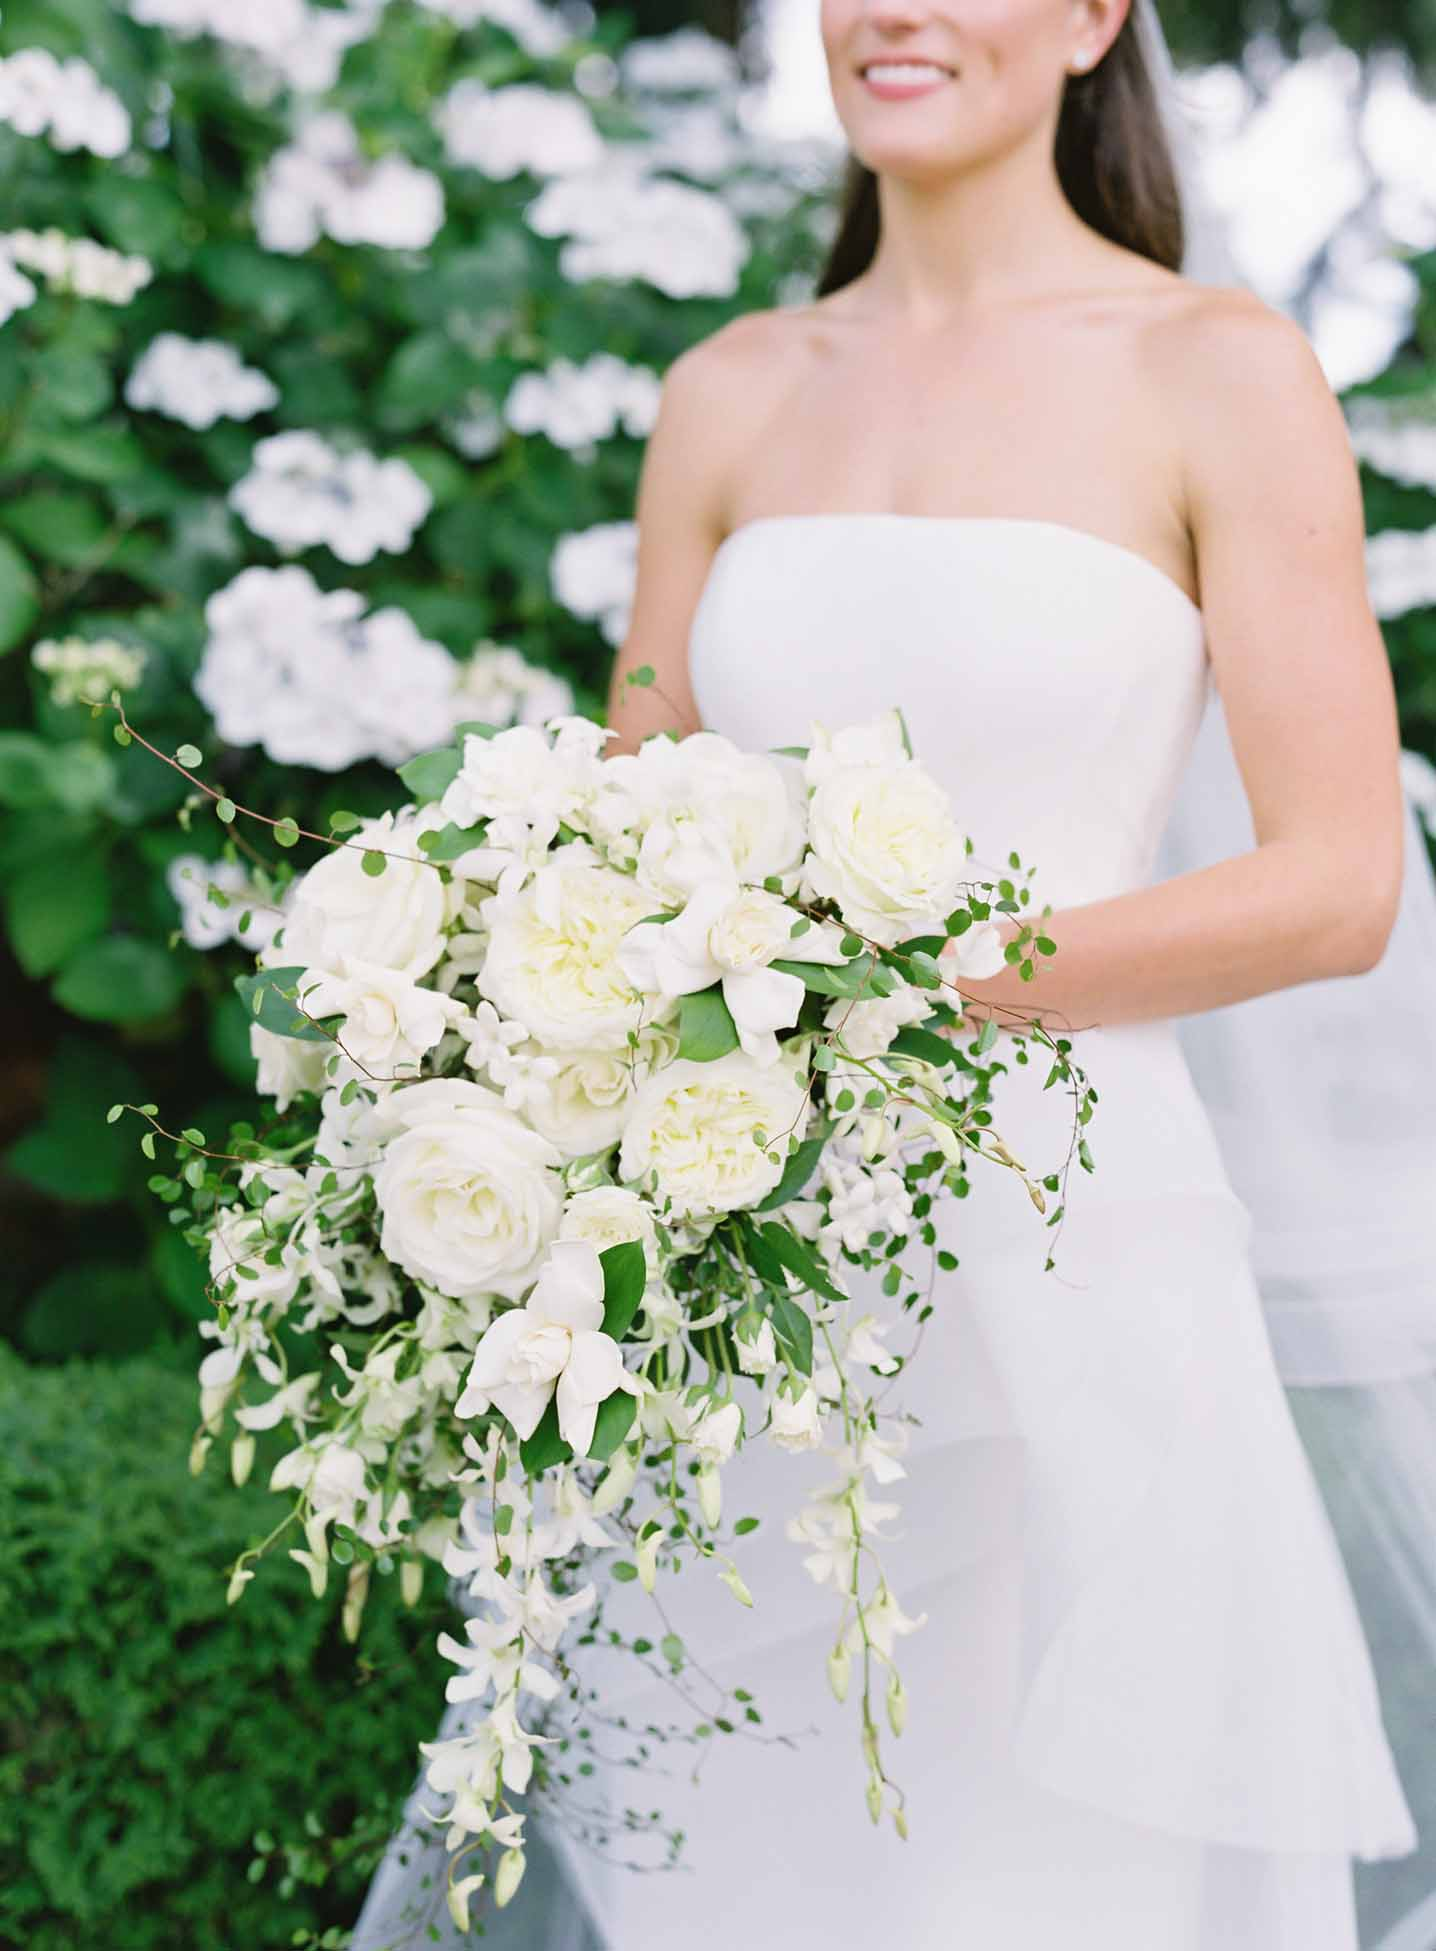 Cascading bridal bouquet of white garden roses, peonies, gardenia, stephanotis, and orchids with iron wire vines - White and Green Wedding